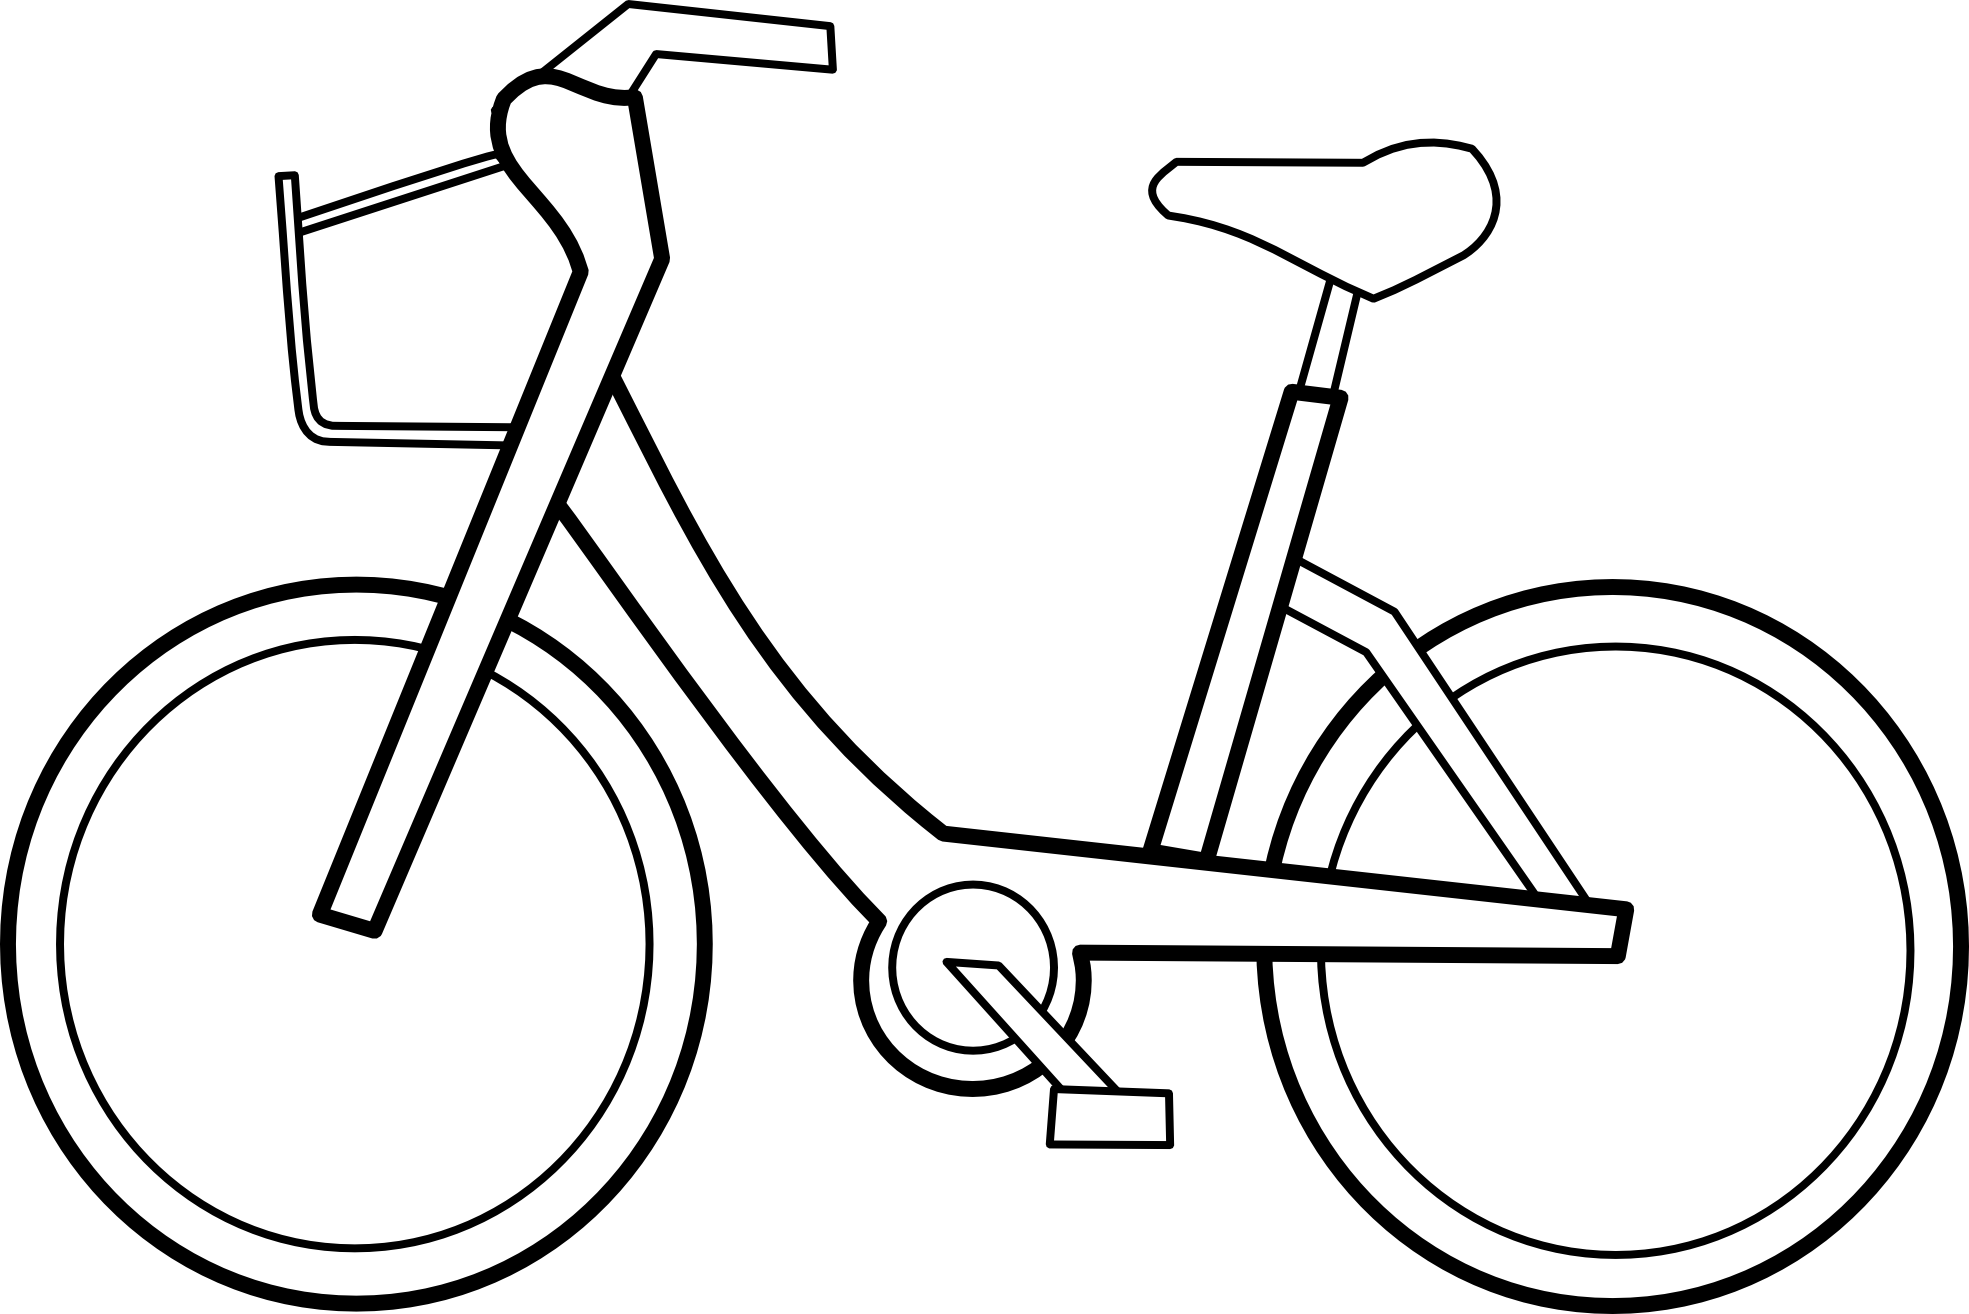 Cycle clipart bicycle drawing. Free image of download